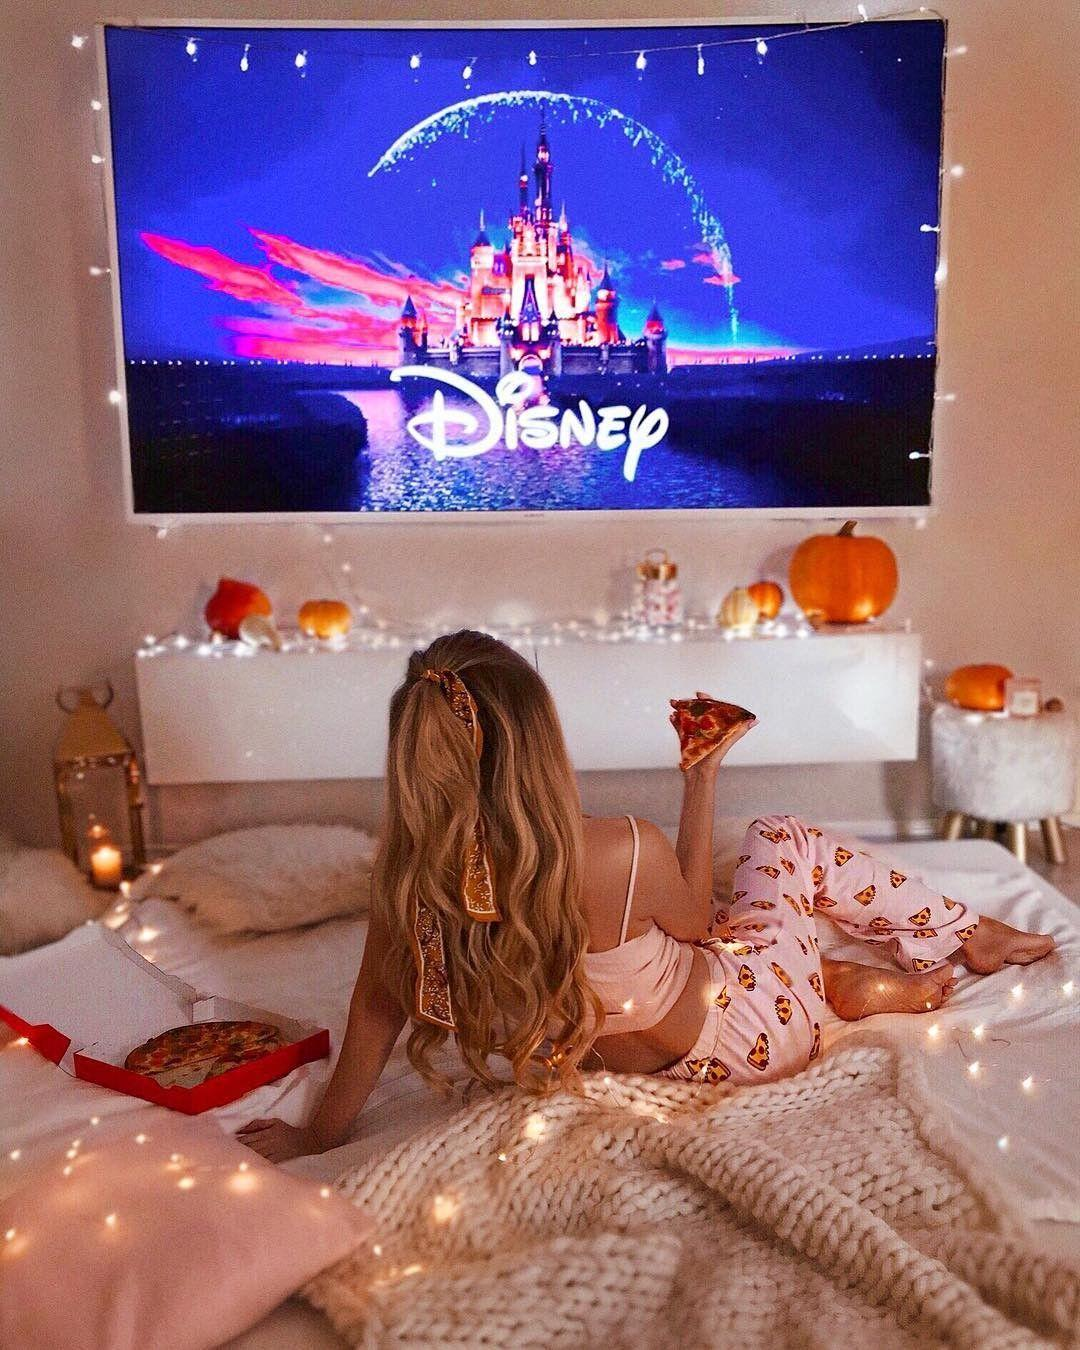 The best holiday time with pizza and TV. Girl lies on the bed and watch movie